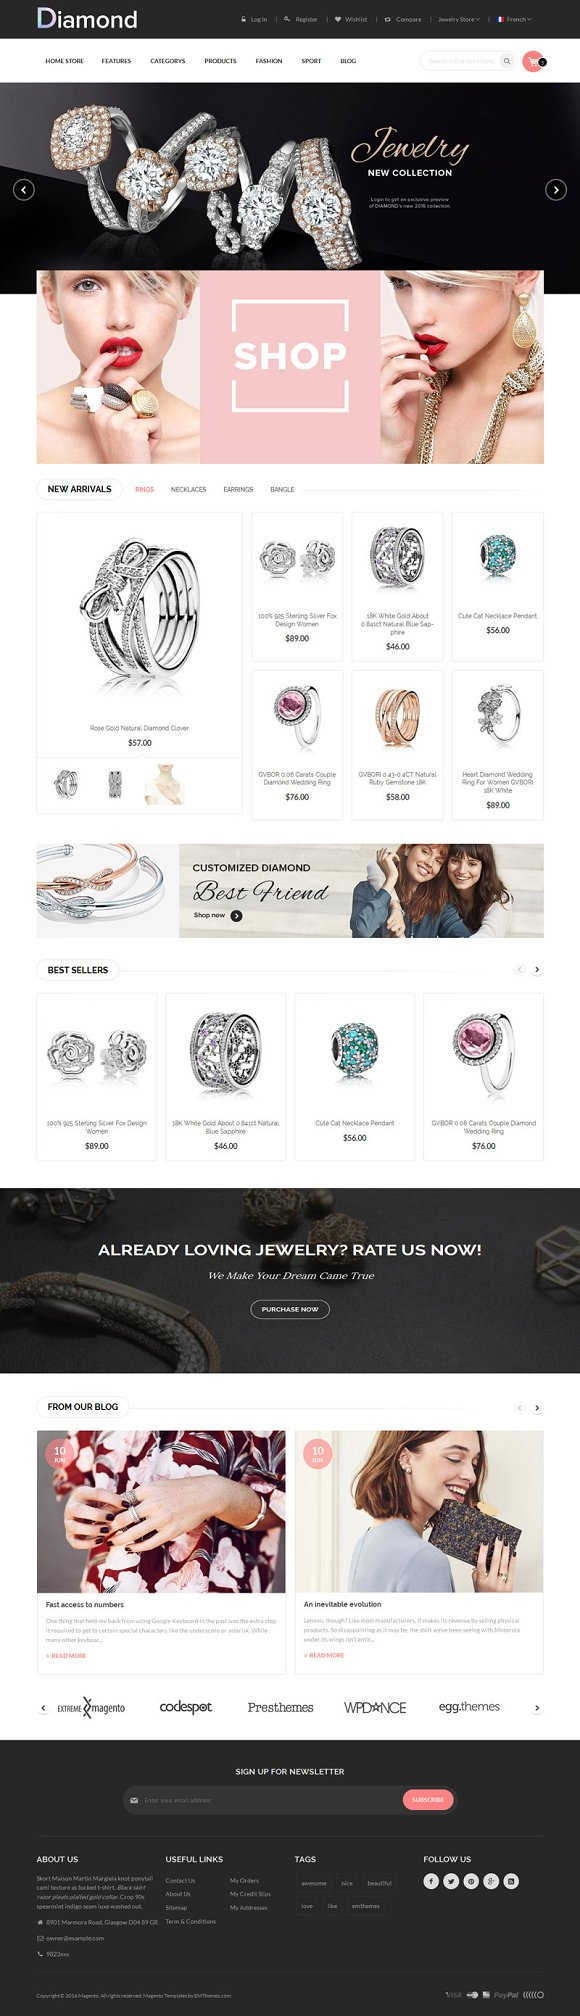 Diamond Store Magento1 2 Theme